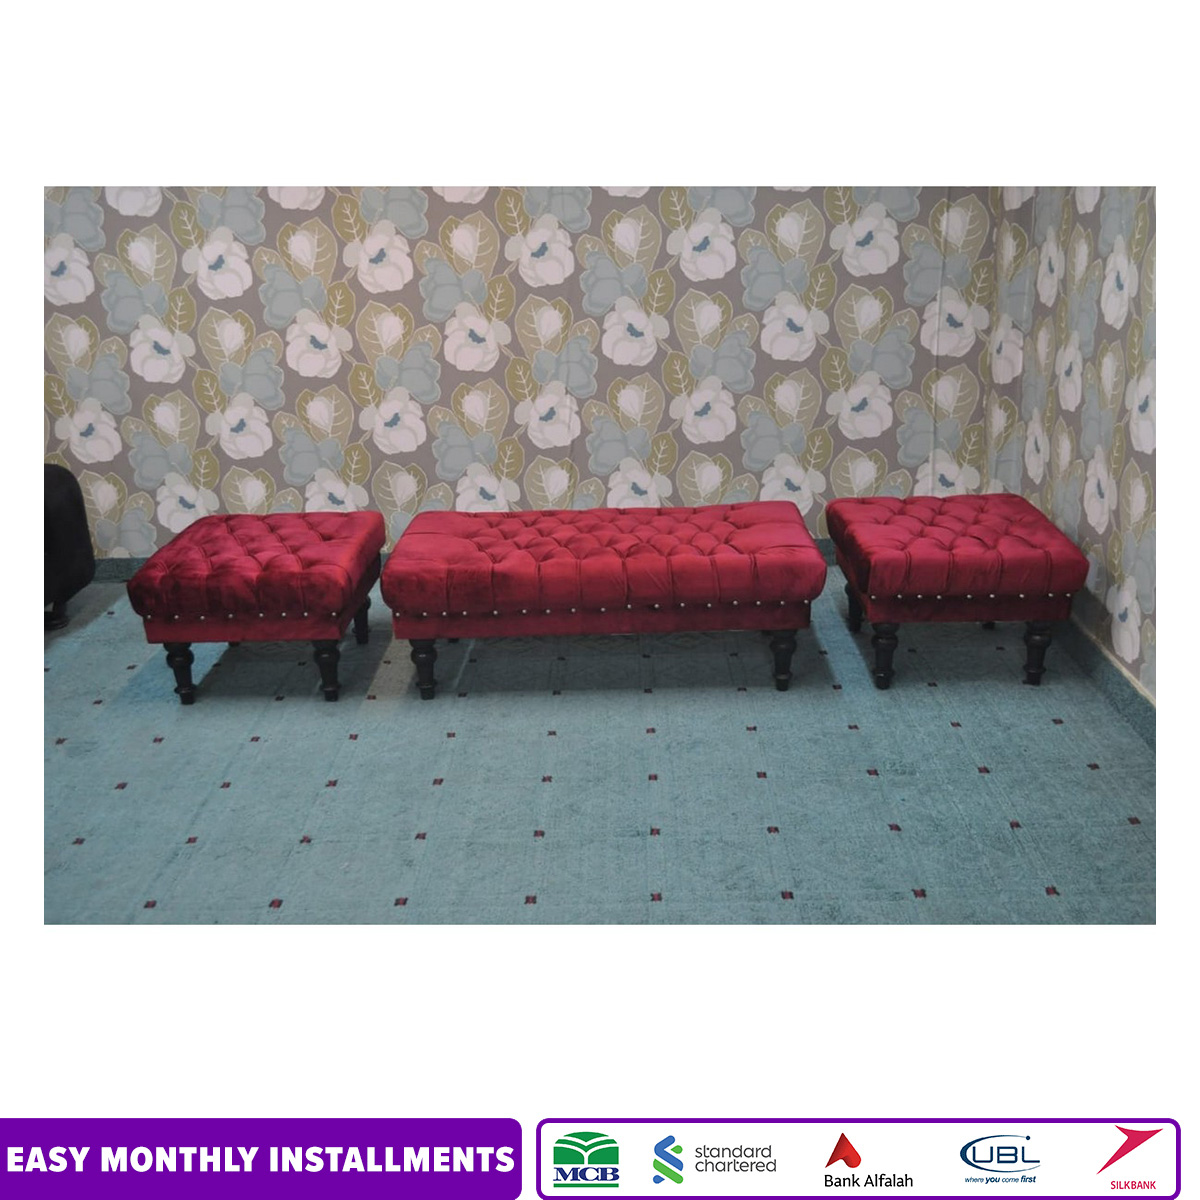 Galaxy 4 Seater Puffy Set Fabric Maroon Valvid (Size 2 unit single seat 22x22 inches and 1 unit large 2 seater 44x22 complete set height 17 inches)